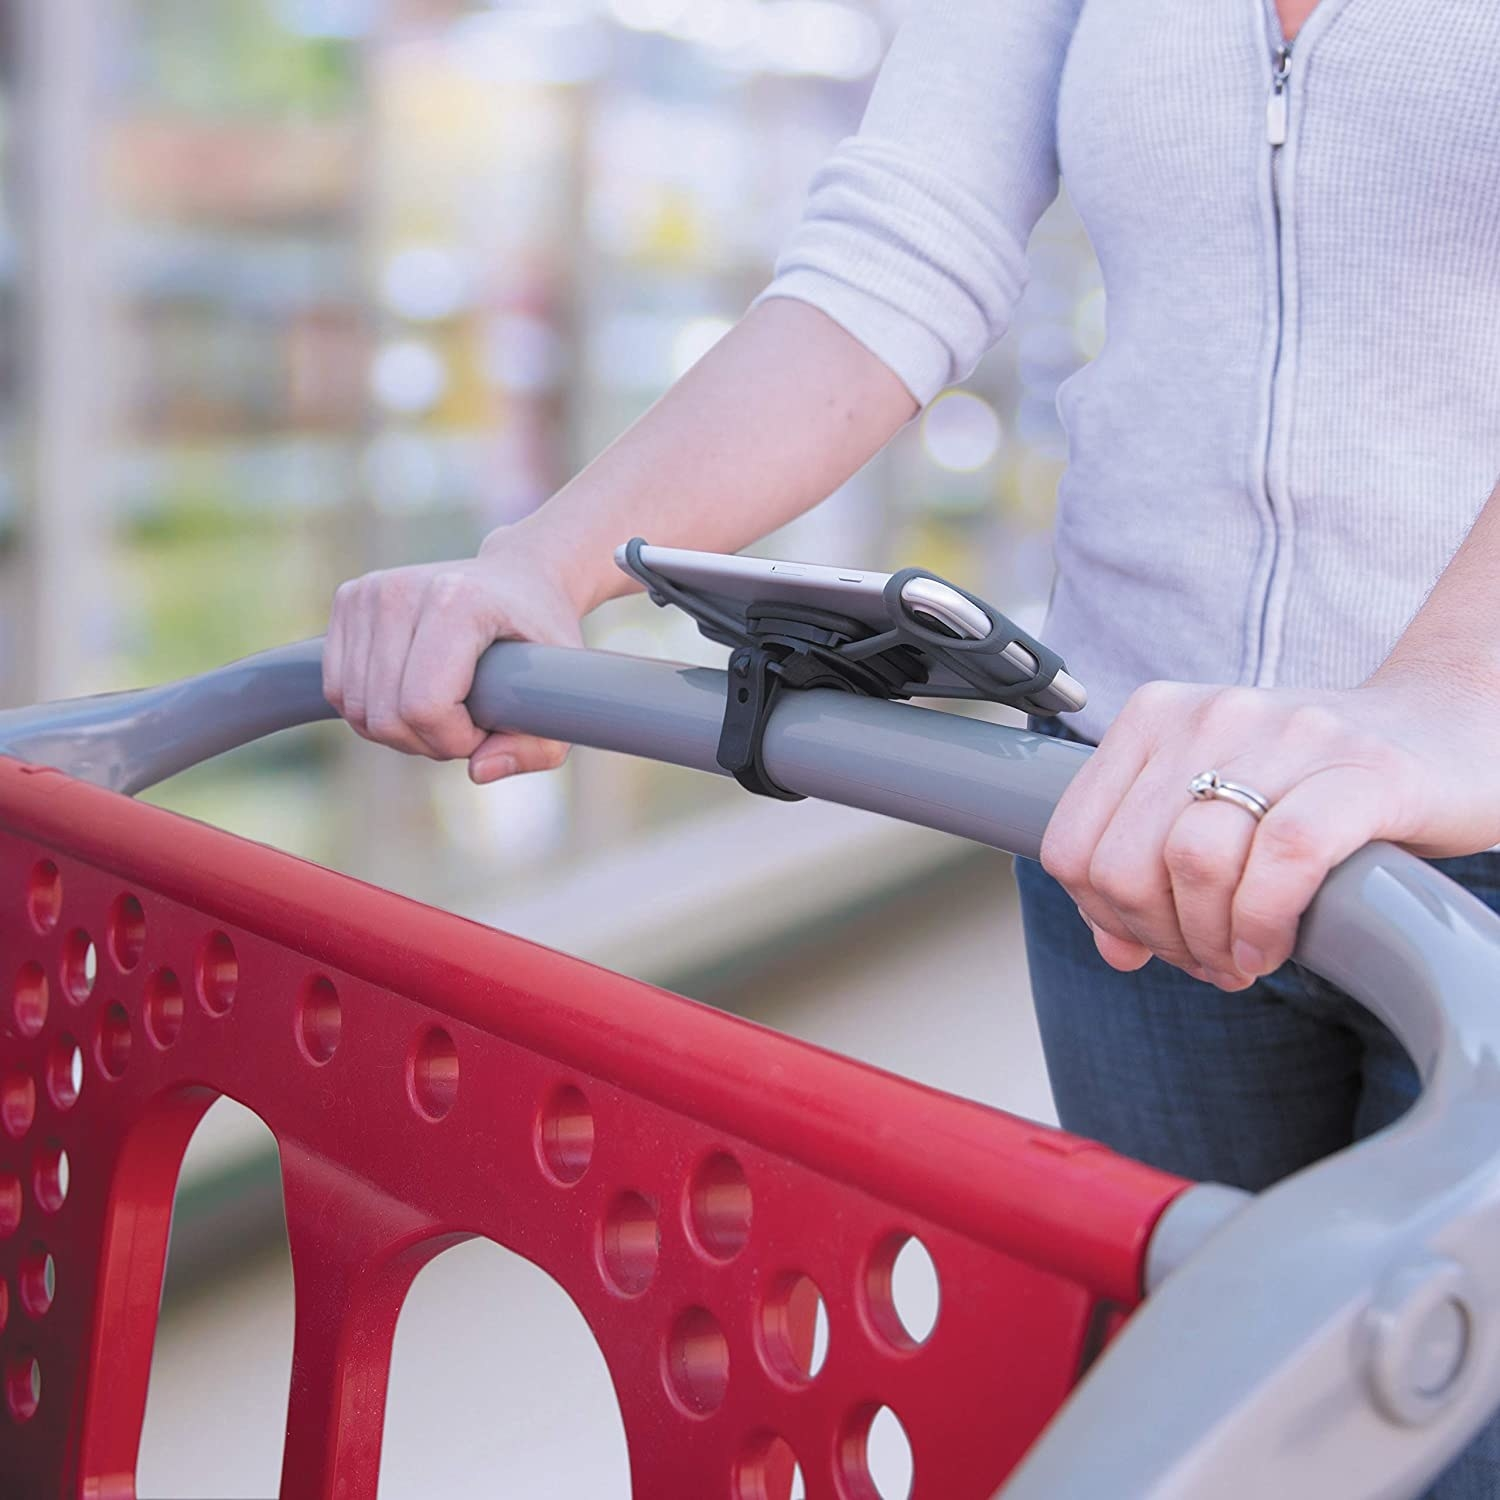 A person pushing a shopping cart with the phone mount attached to it